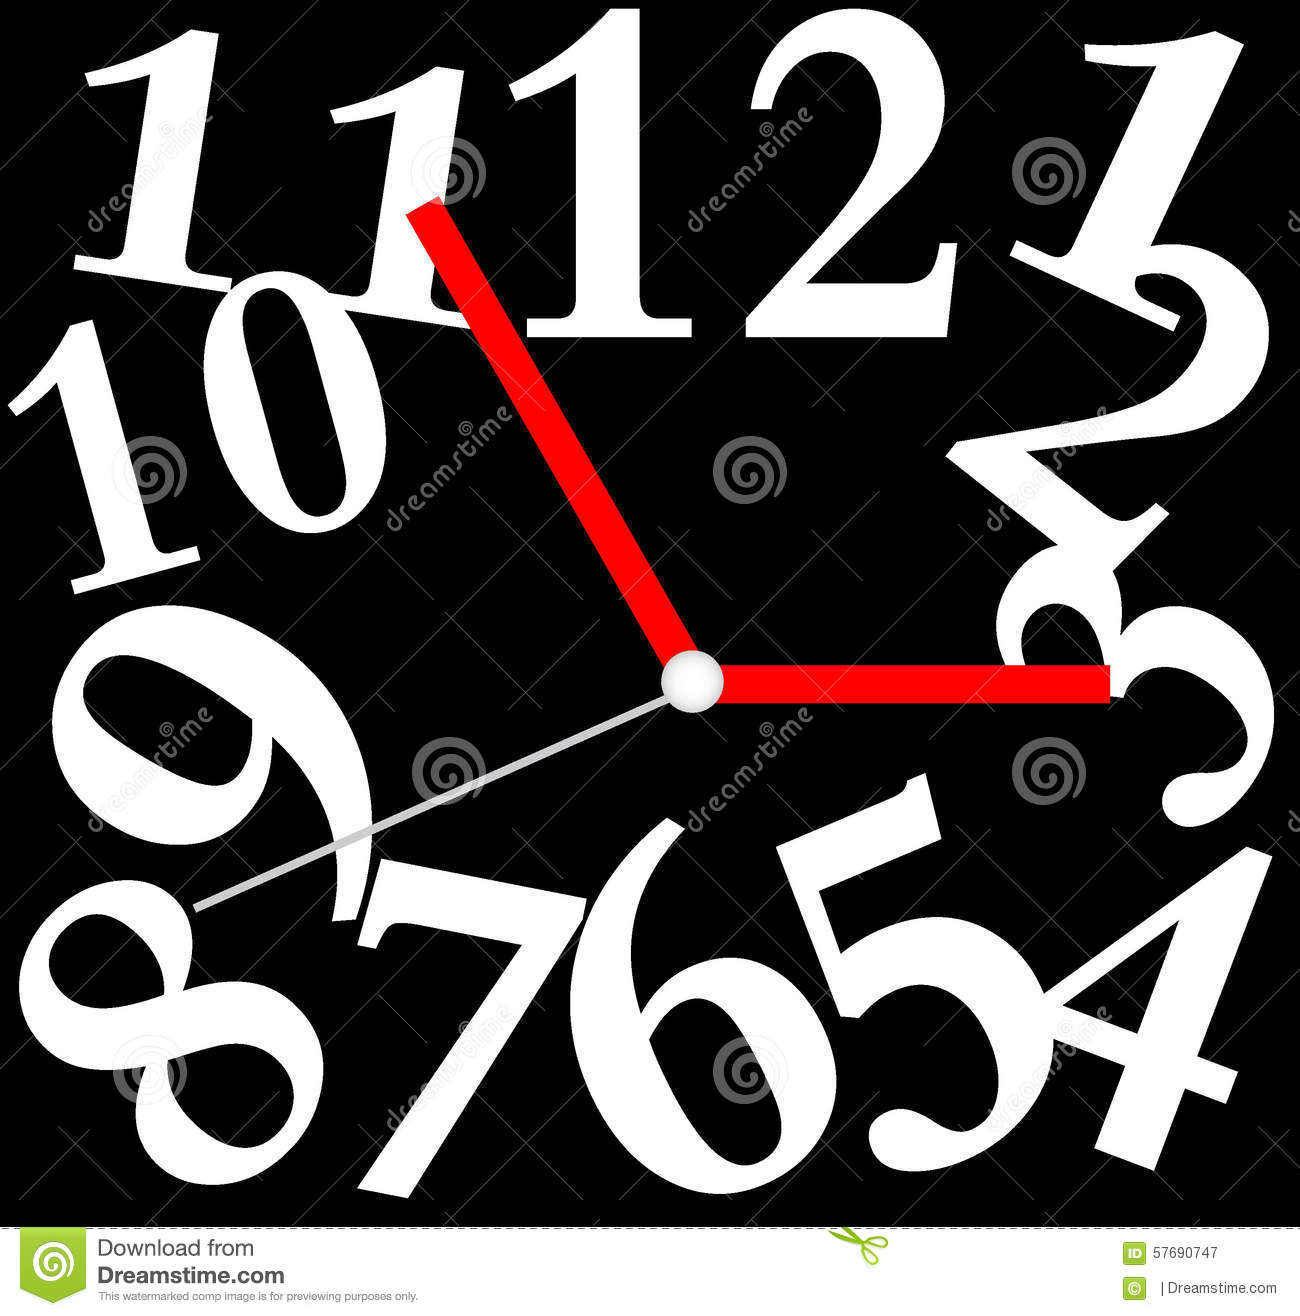 Creative clock face design stock vector image 57690747 for Blueprint number